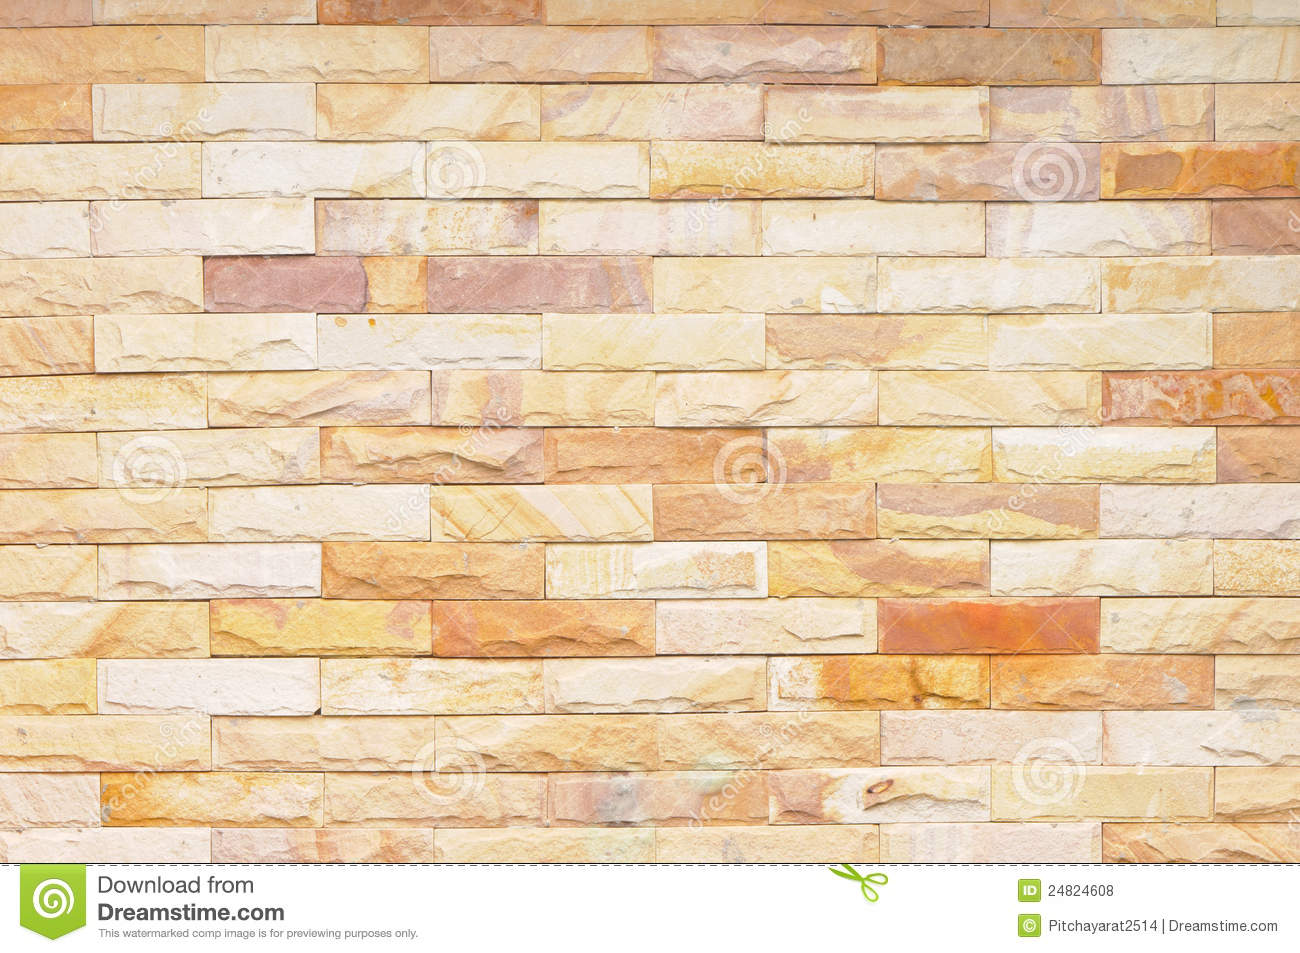 brick wall design as mortar background texture - Brick Wall Design